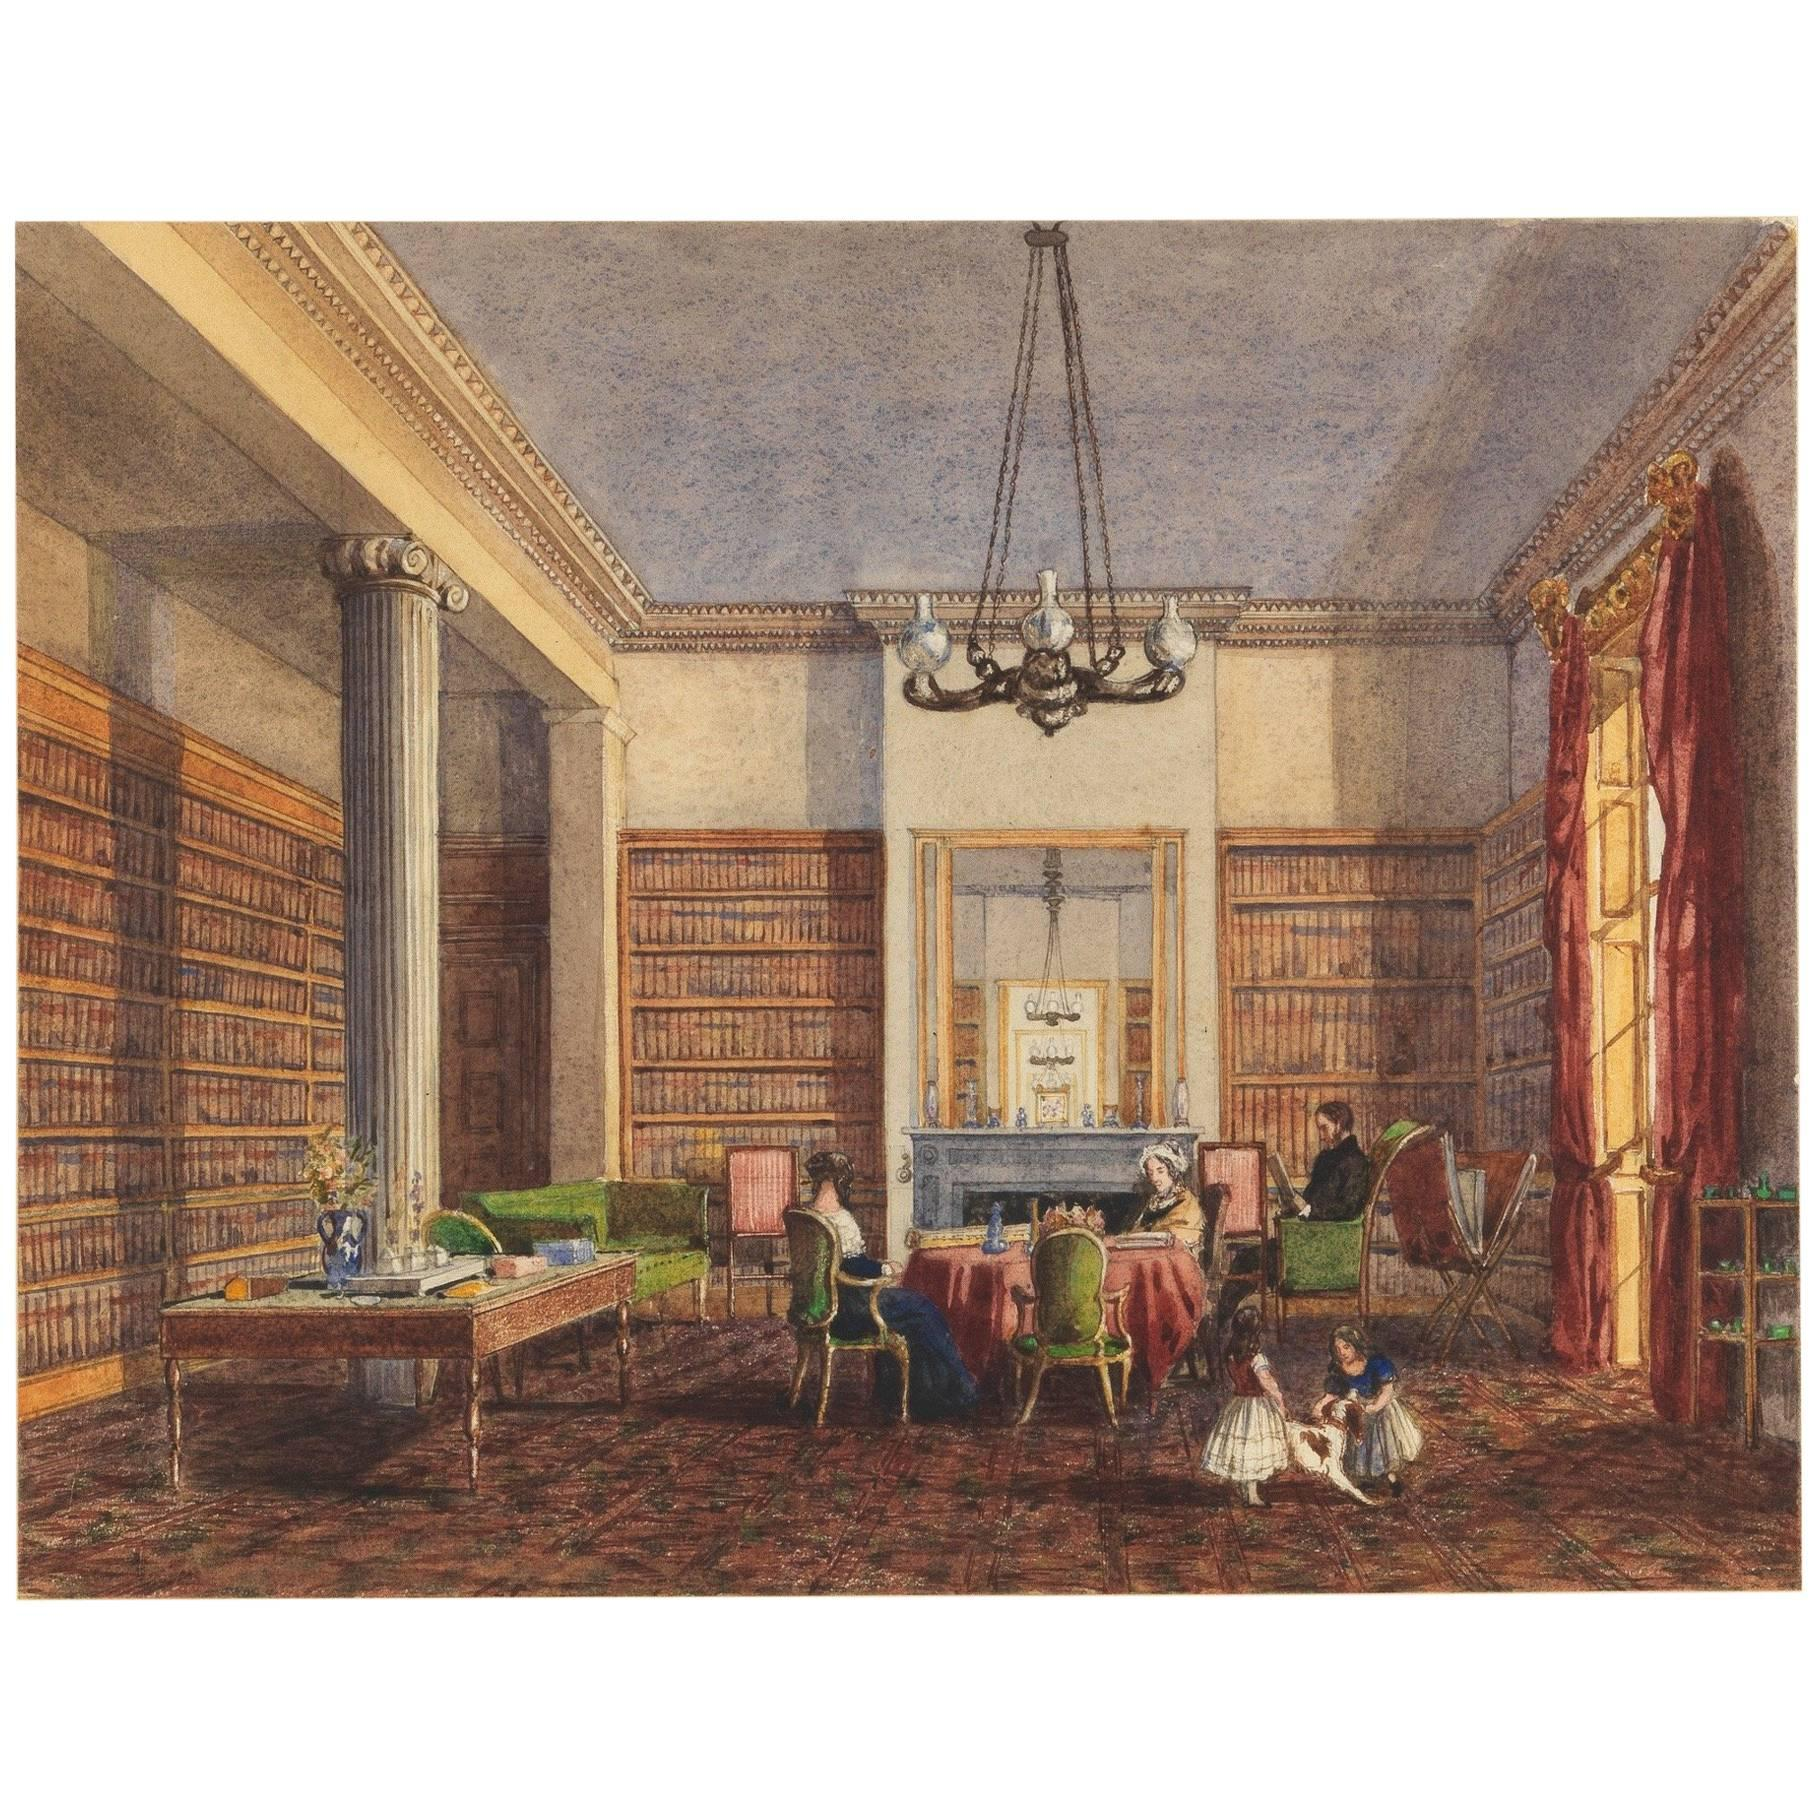 19th Century English Watercolor of the Thirlestaine House Library, Cheltenham